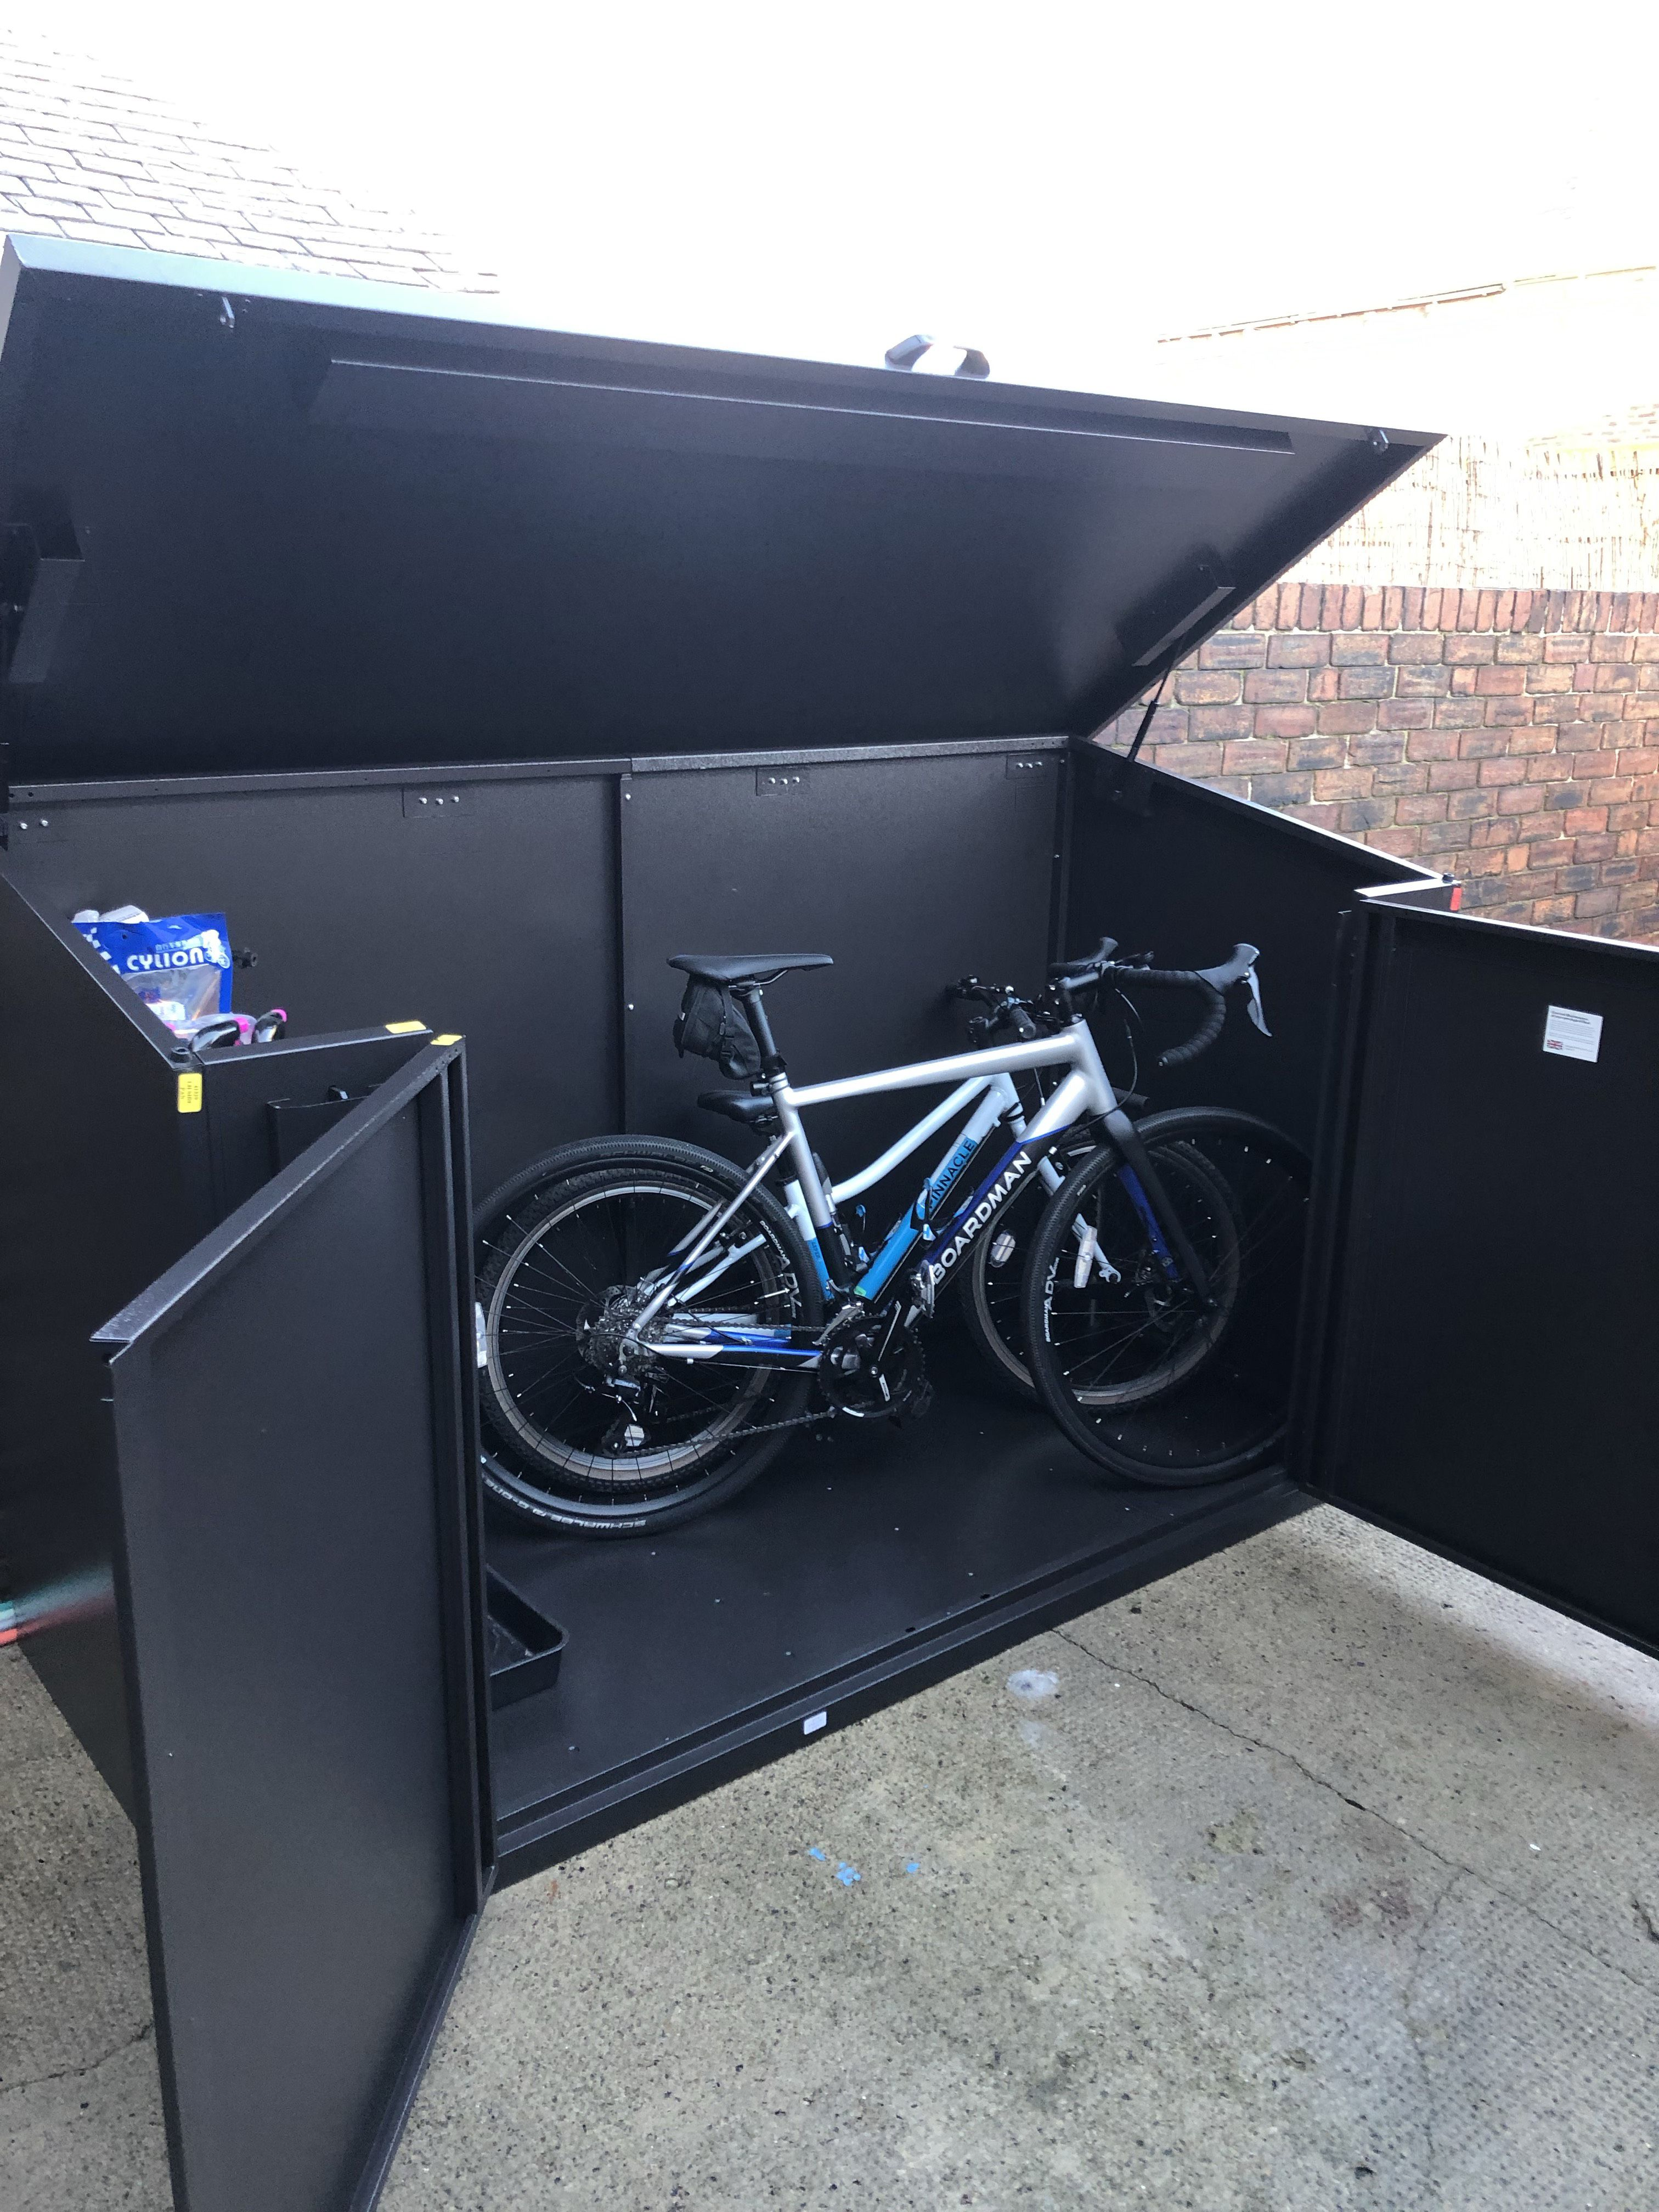 2f6f165dbcf The Access offers all metal bike storage for 4* bikes and is a generously  proportioned bike storage solution. Built from thick galvanized  (weatherproof) ...